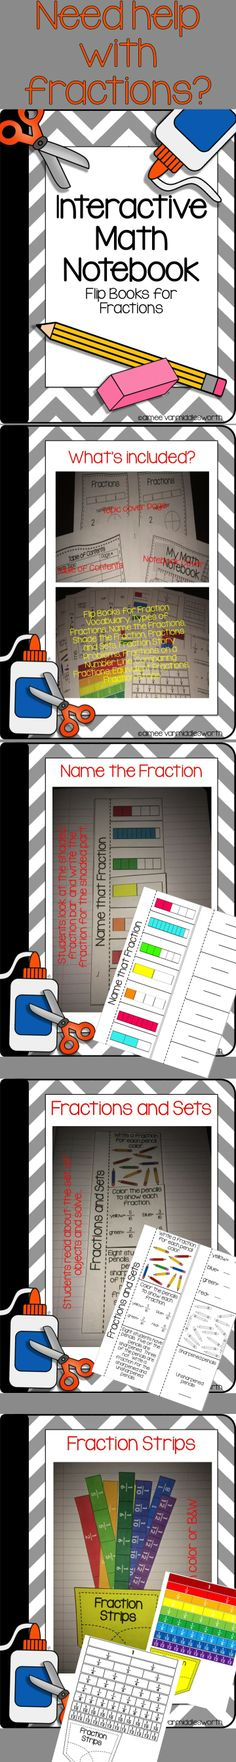 Math Interactive Notebook for Fractions